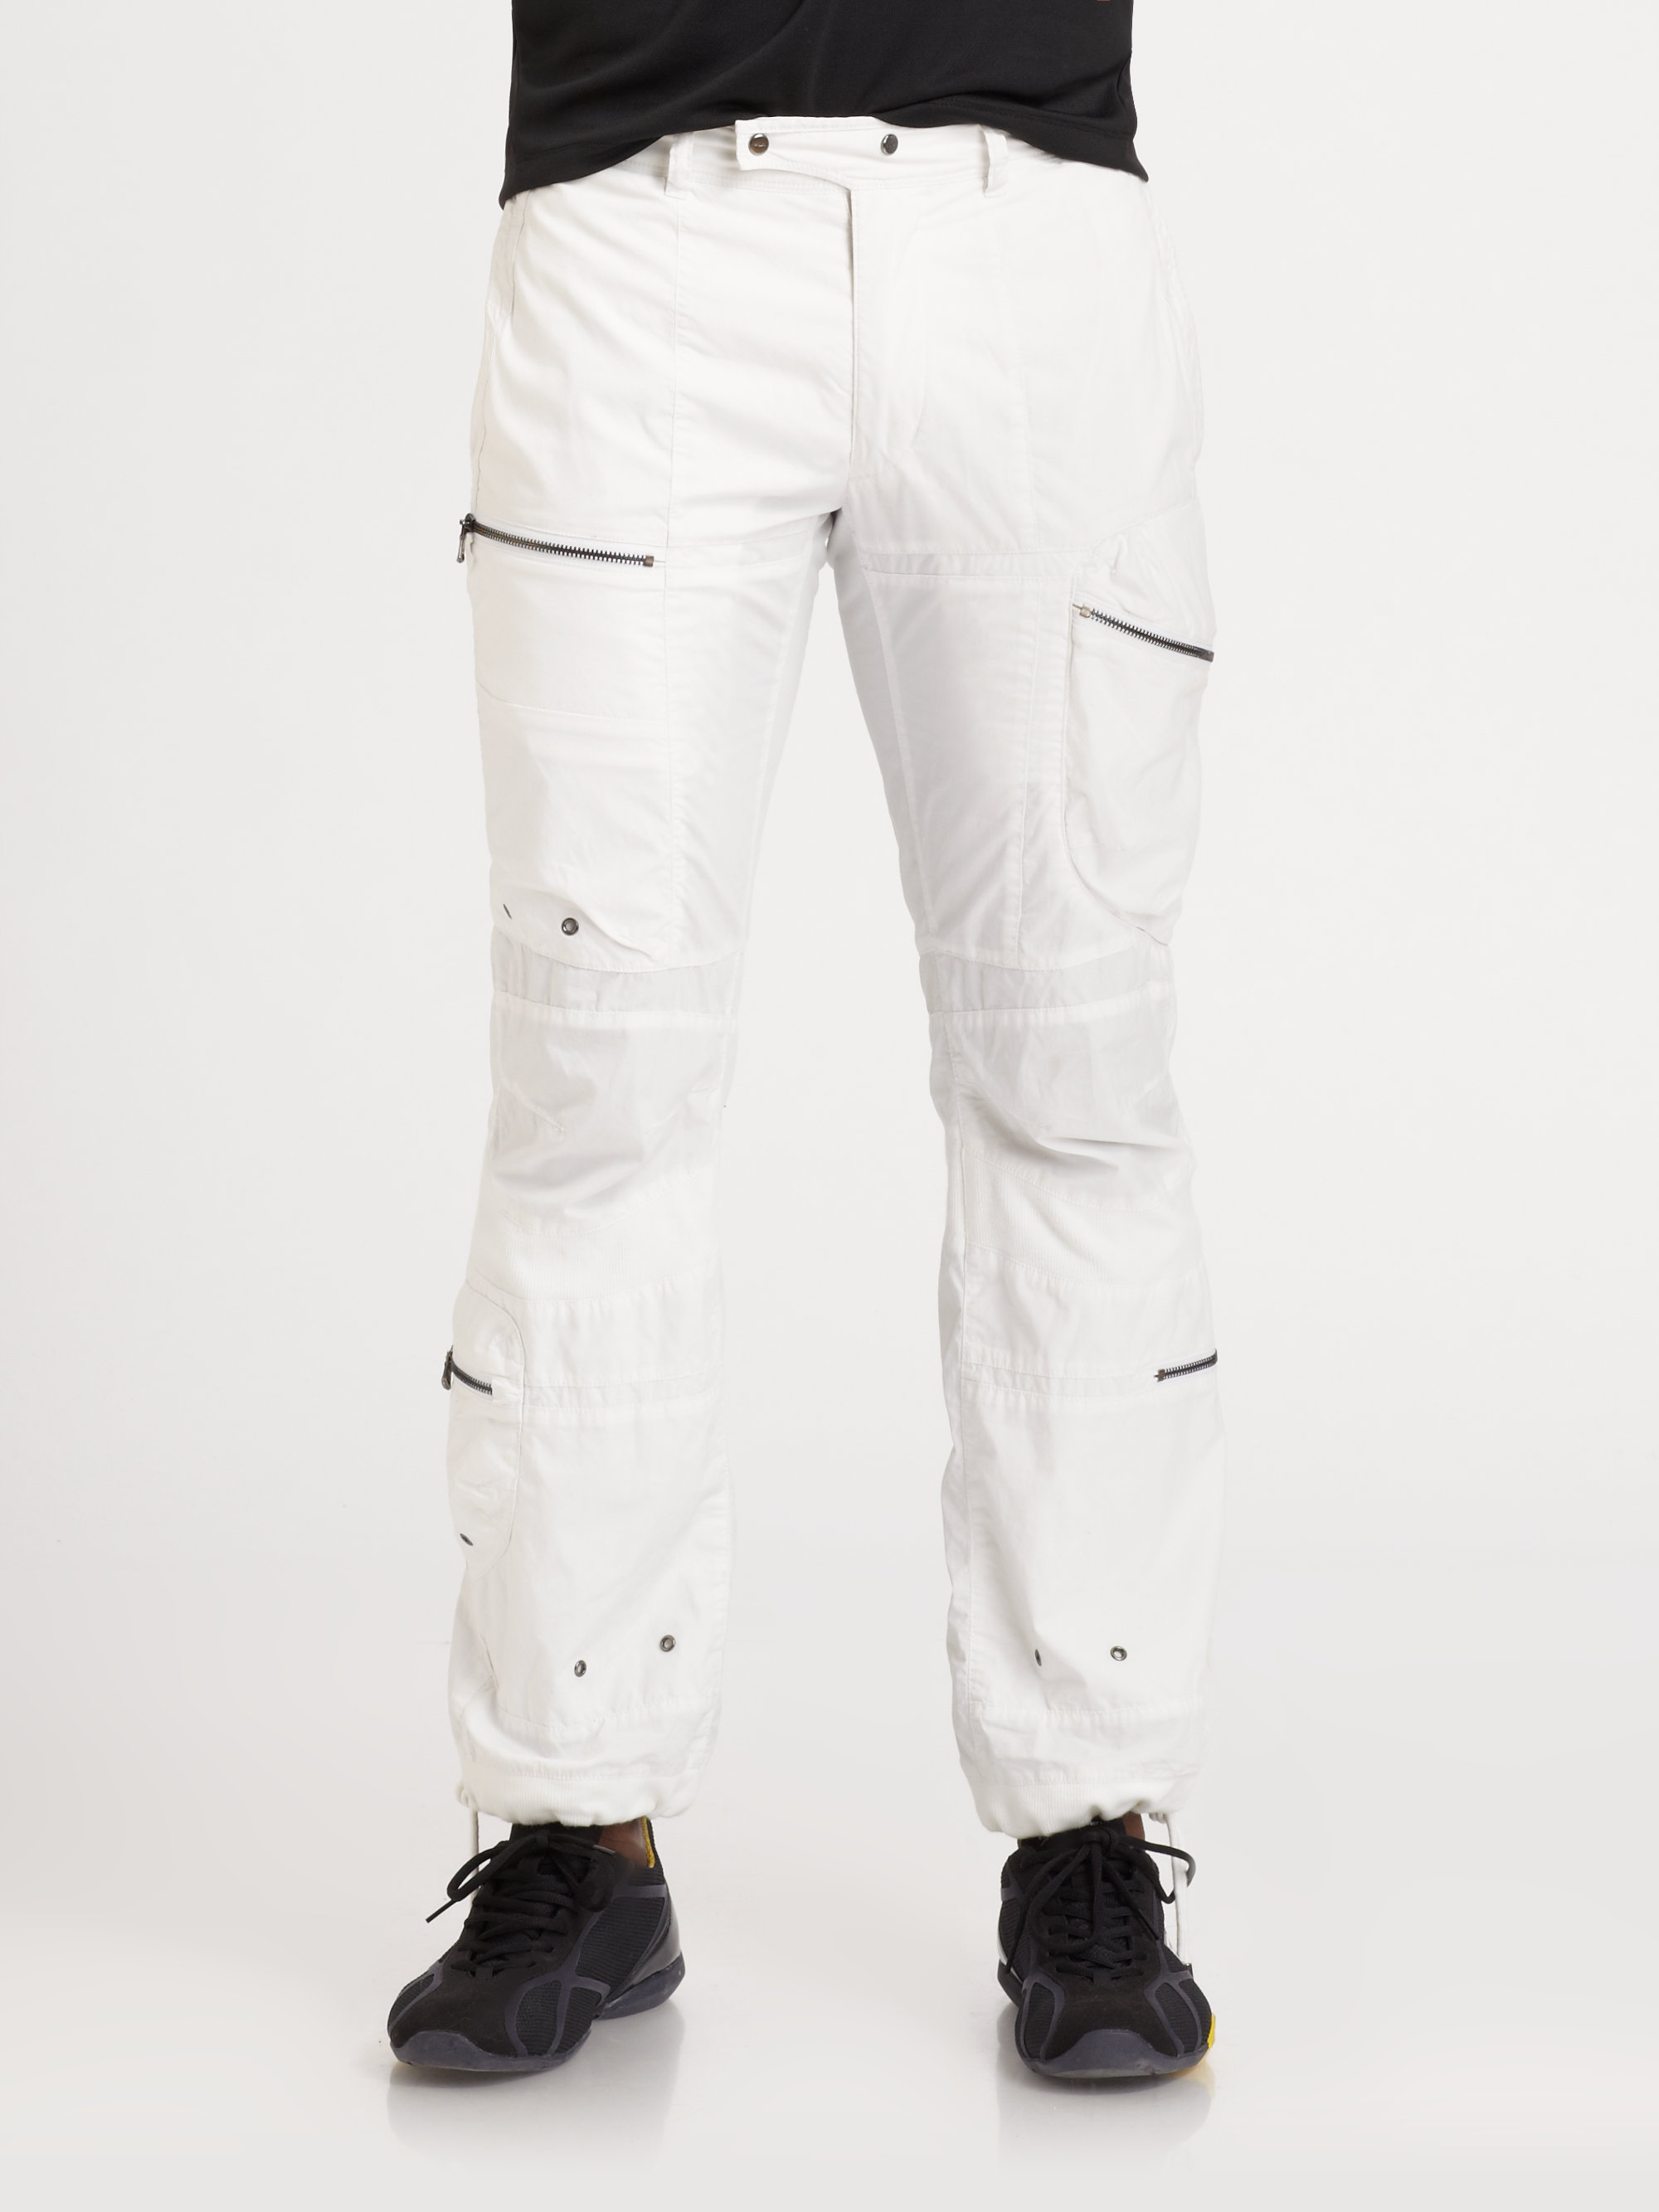 Mens White Skinny Jeans Cheap